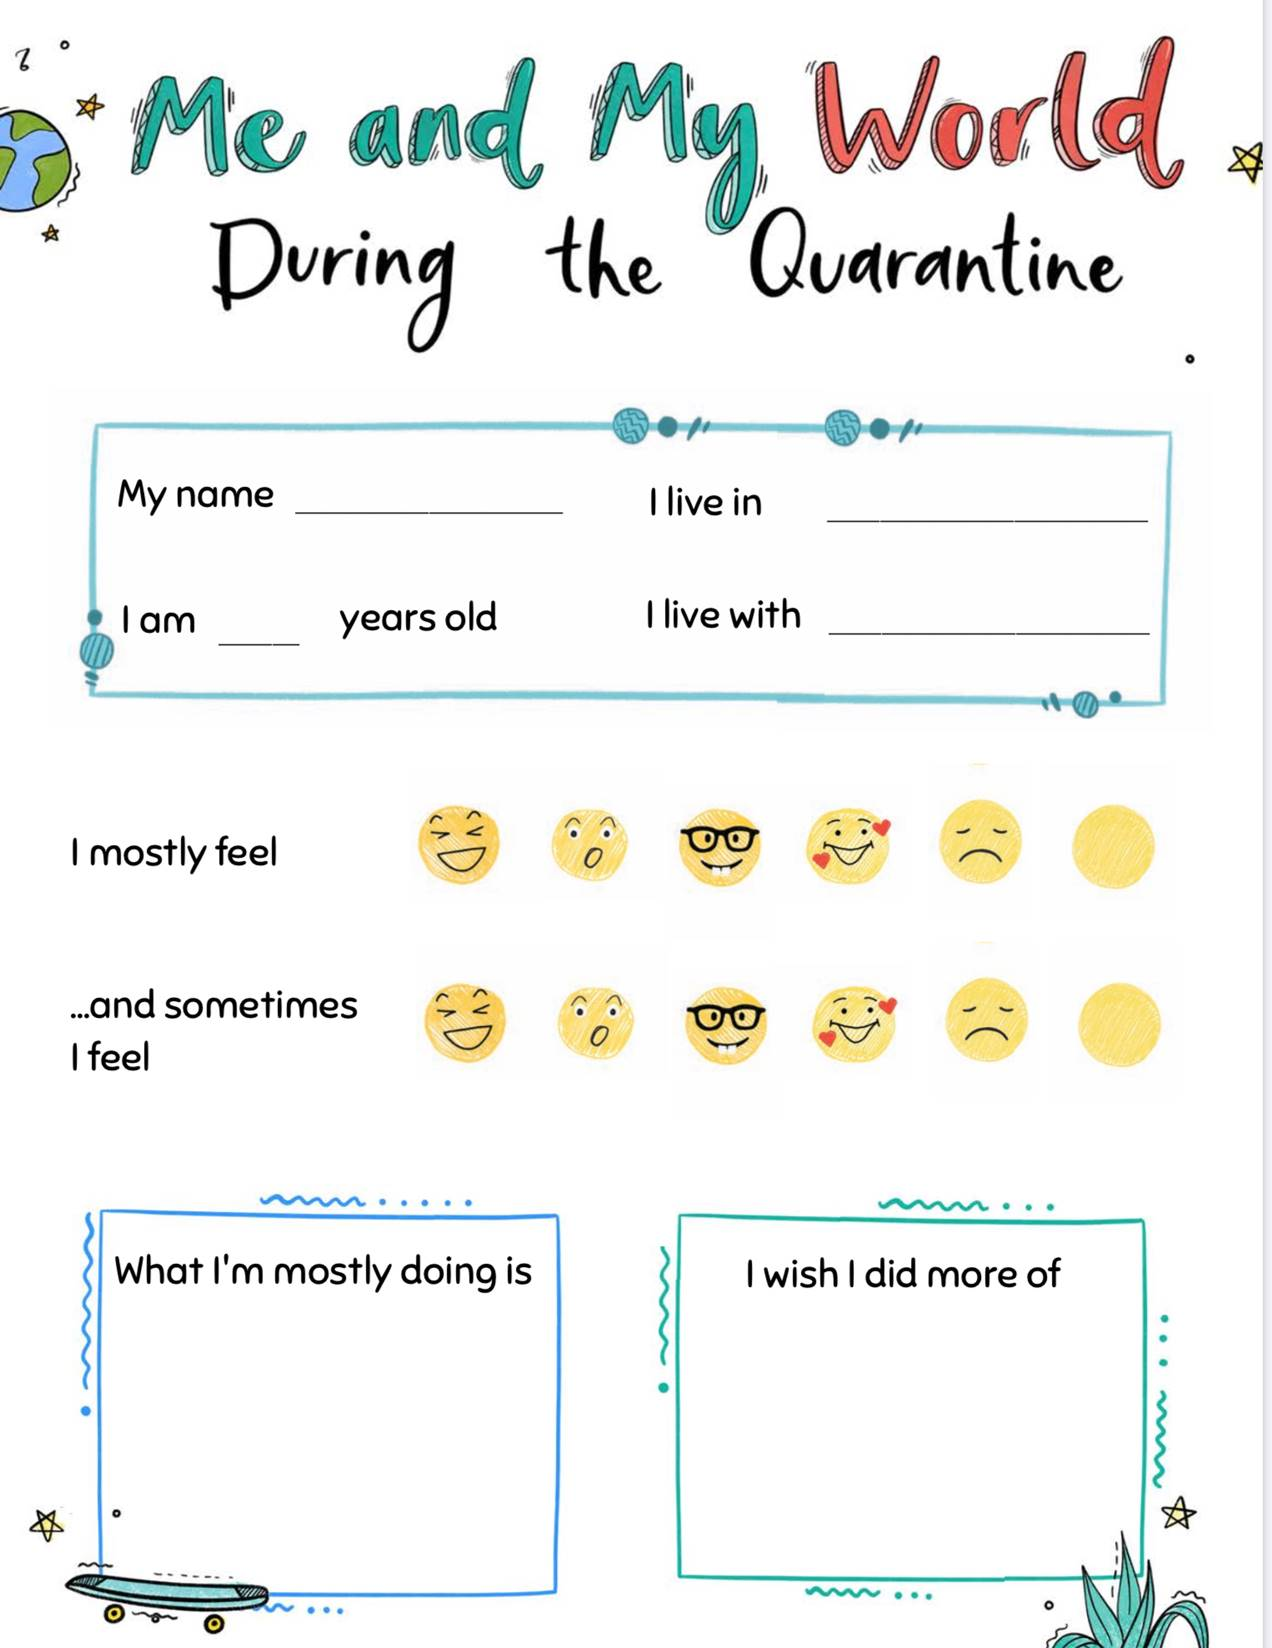 Wellbeing Activities Quarantine Time Capsule Amp Daily